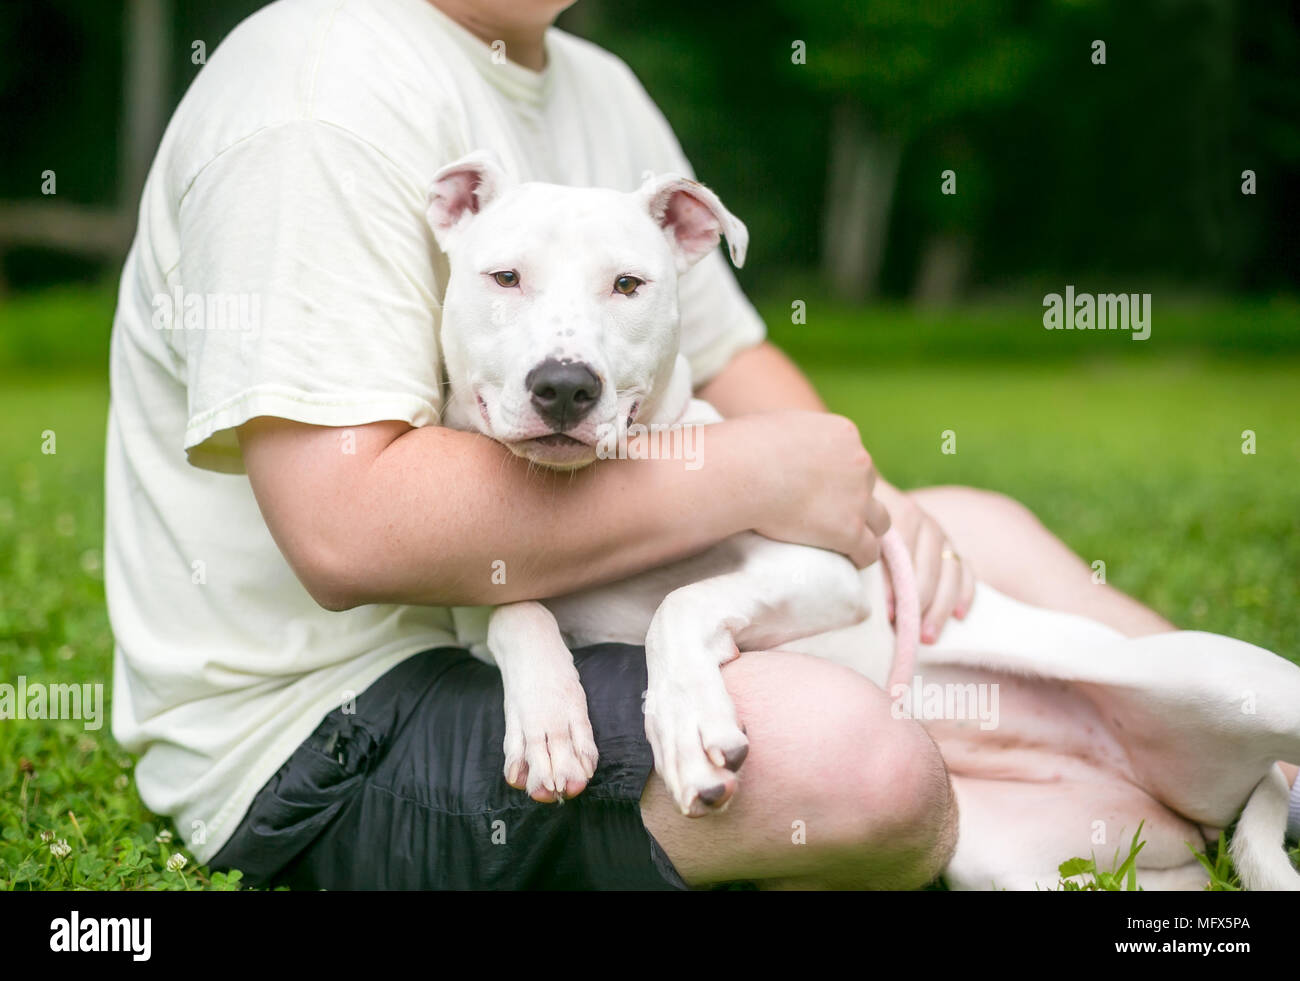 A Pit Bull Terrier mixed breed dog cuddling in a person's lap - Stock Image